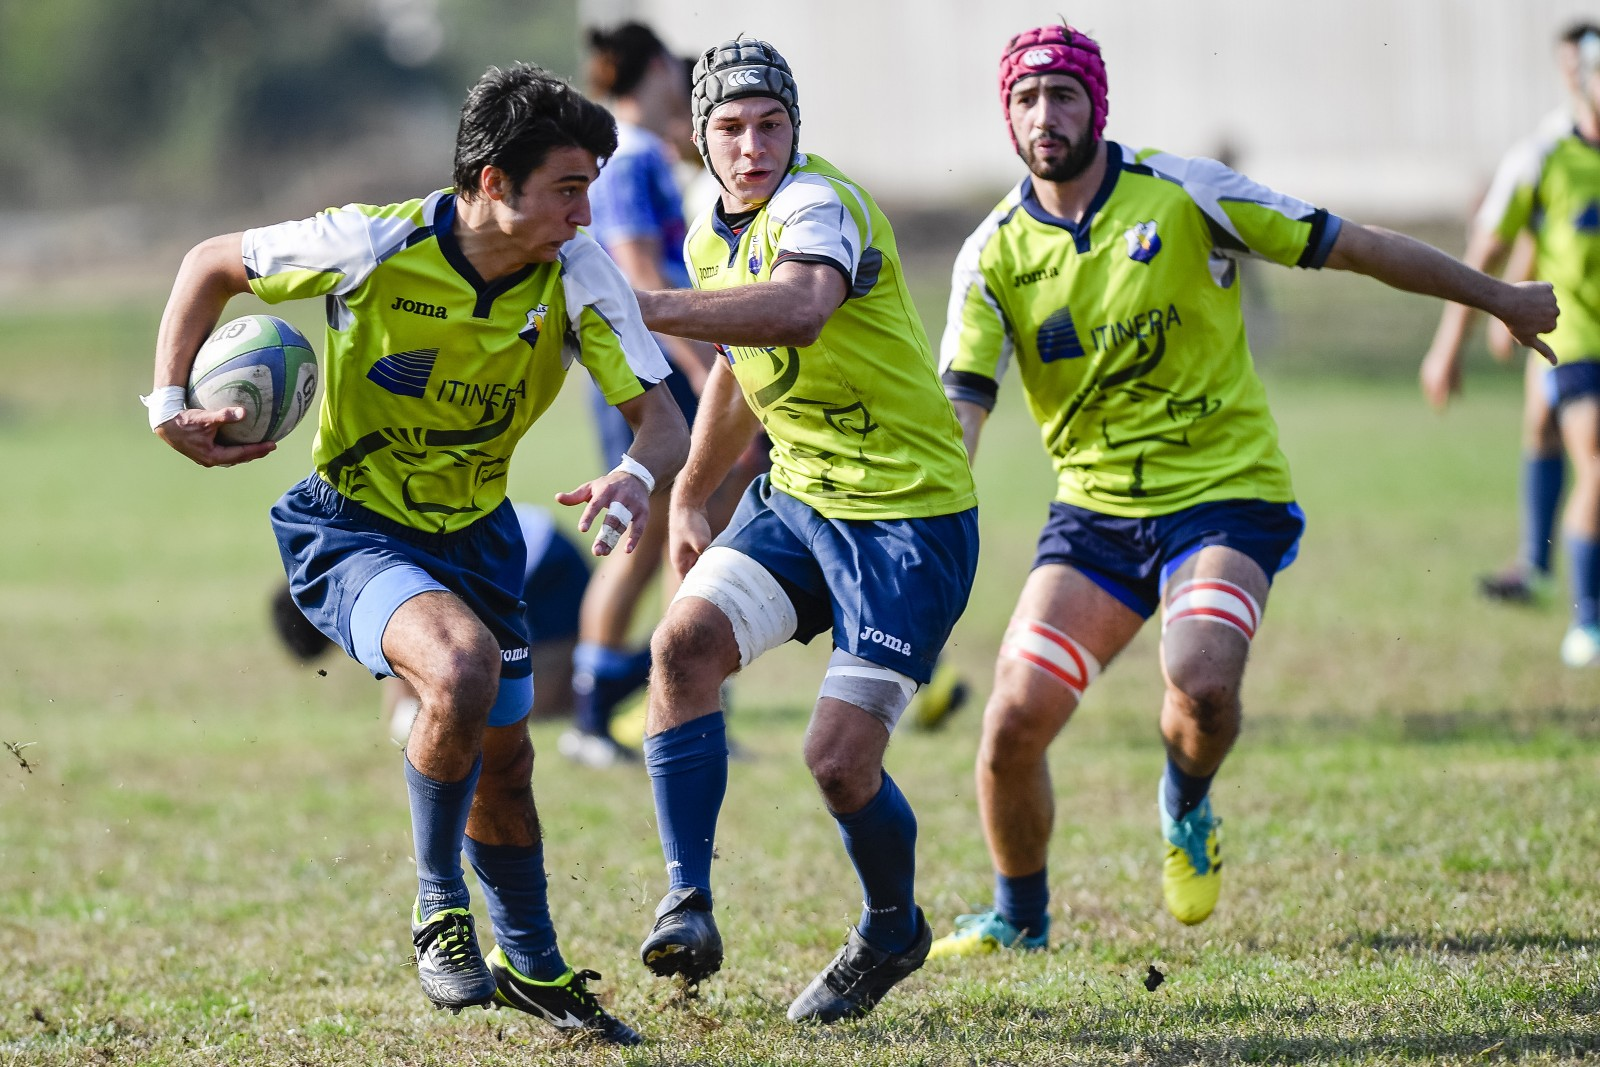 Serie A: Itinera CUS Ad Maiora Rugby 1951 - Accademia Nazionale Ivan Francescato